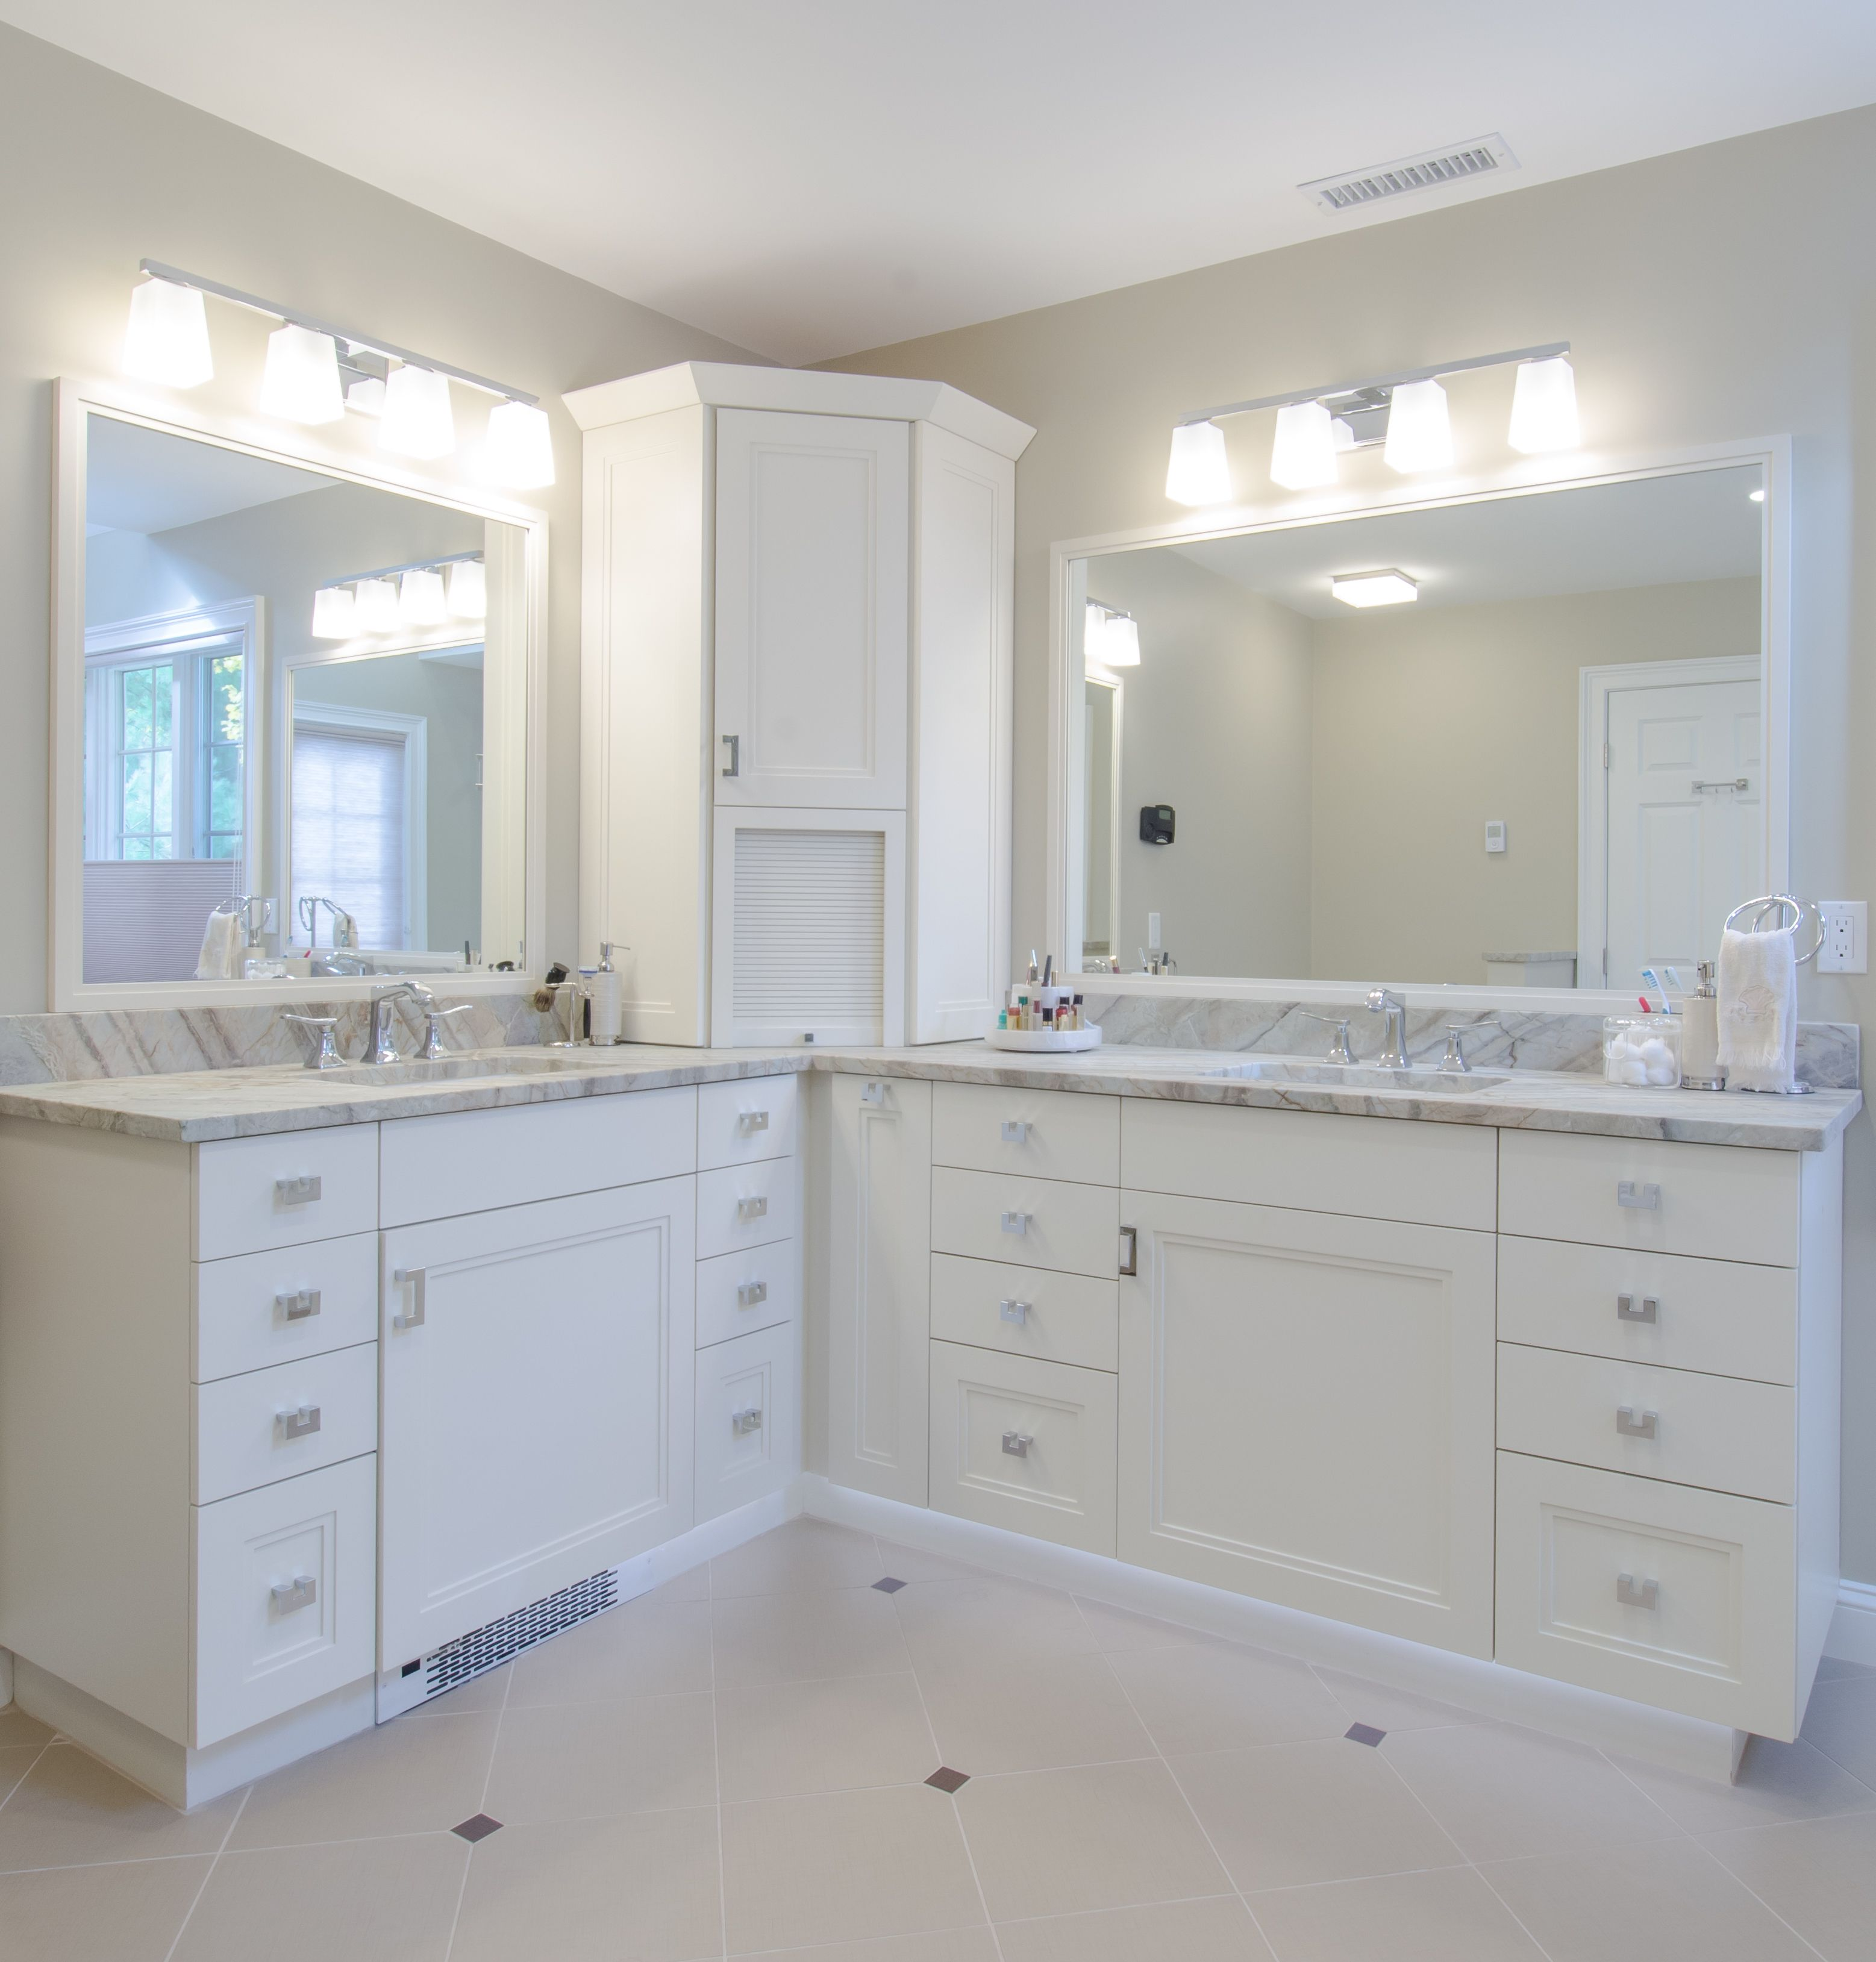 White Bathroom Corner Vanity With His And Her Sinks Lots Of Drawer Storage Appliance Garage